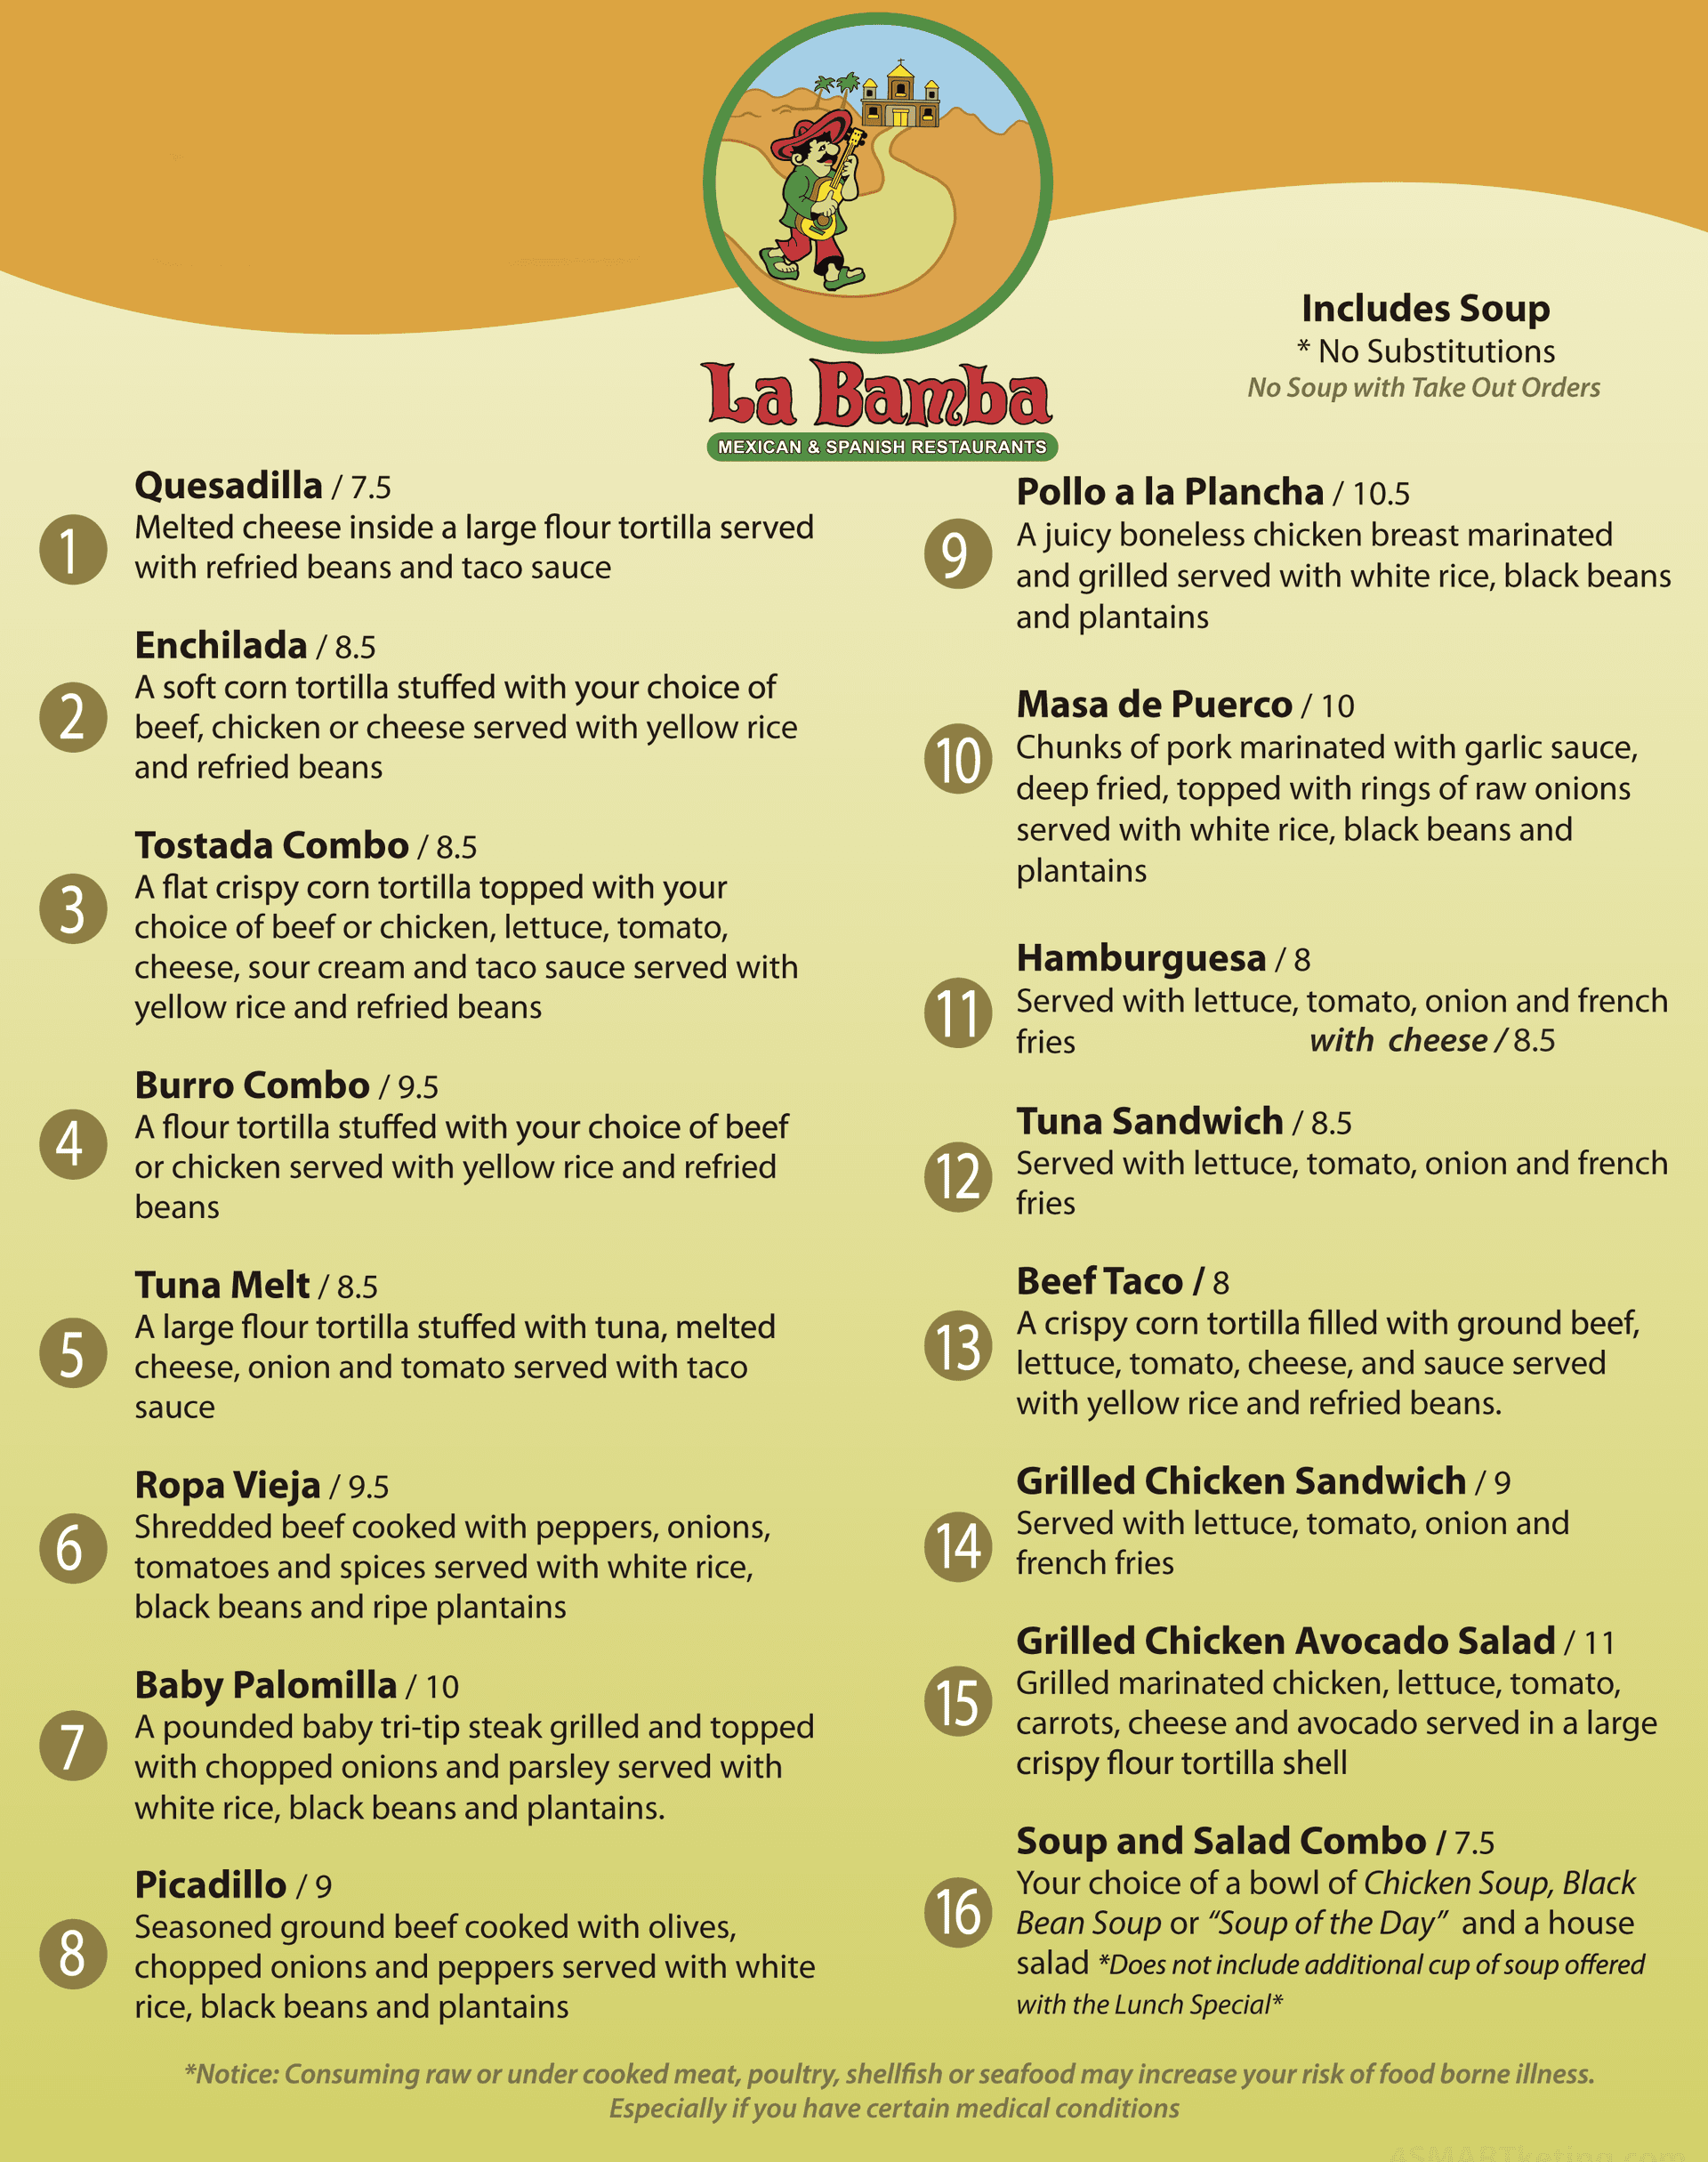 La Bamba Mexican and Spanish Restaurants Lunch Menu